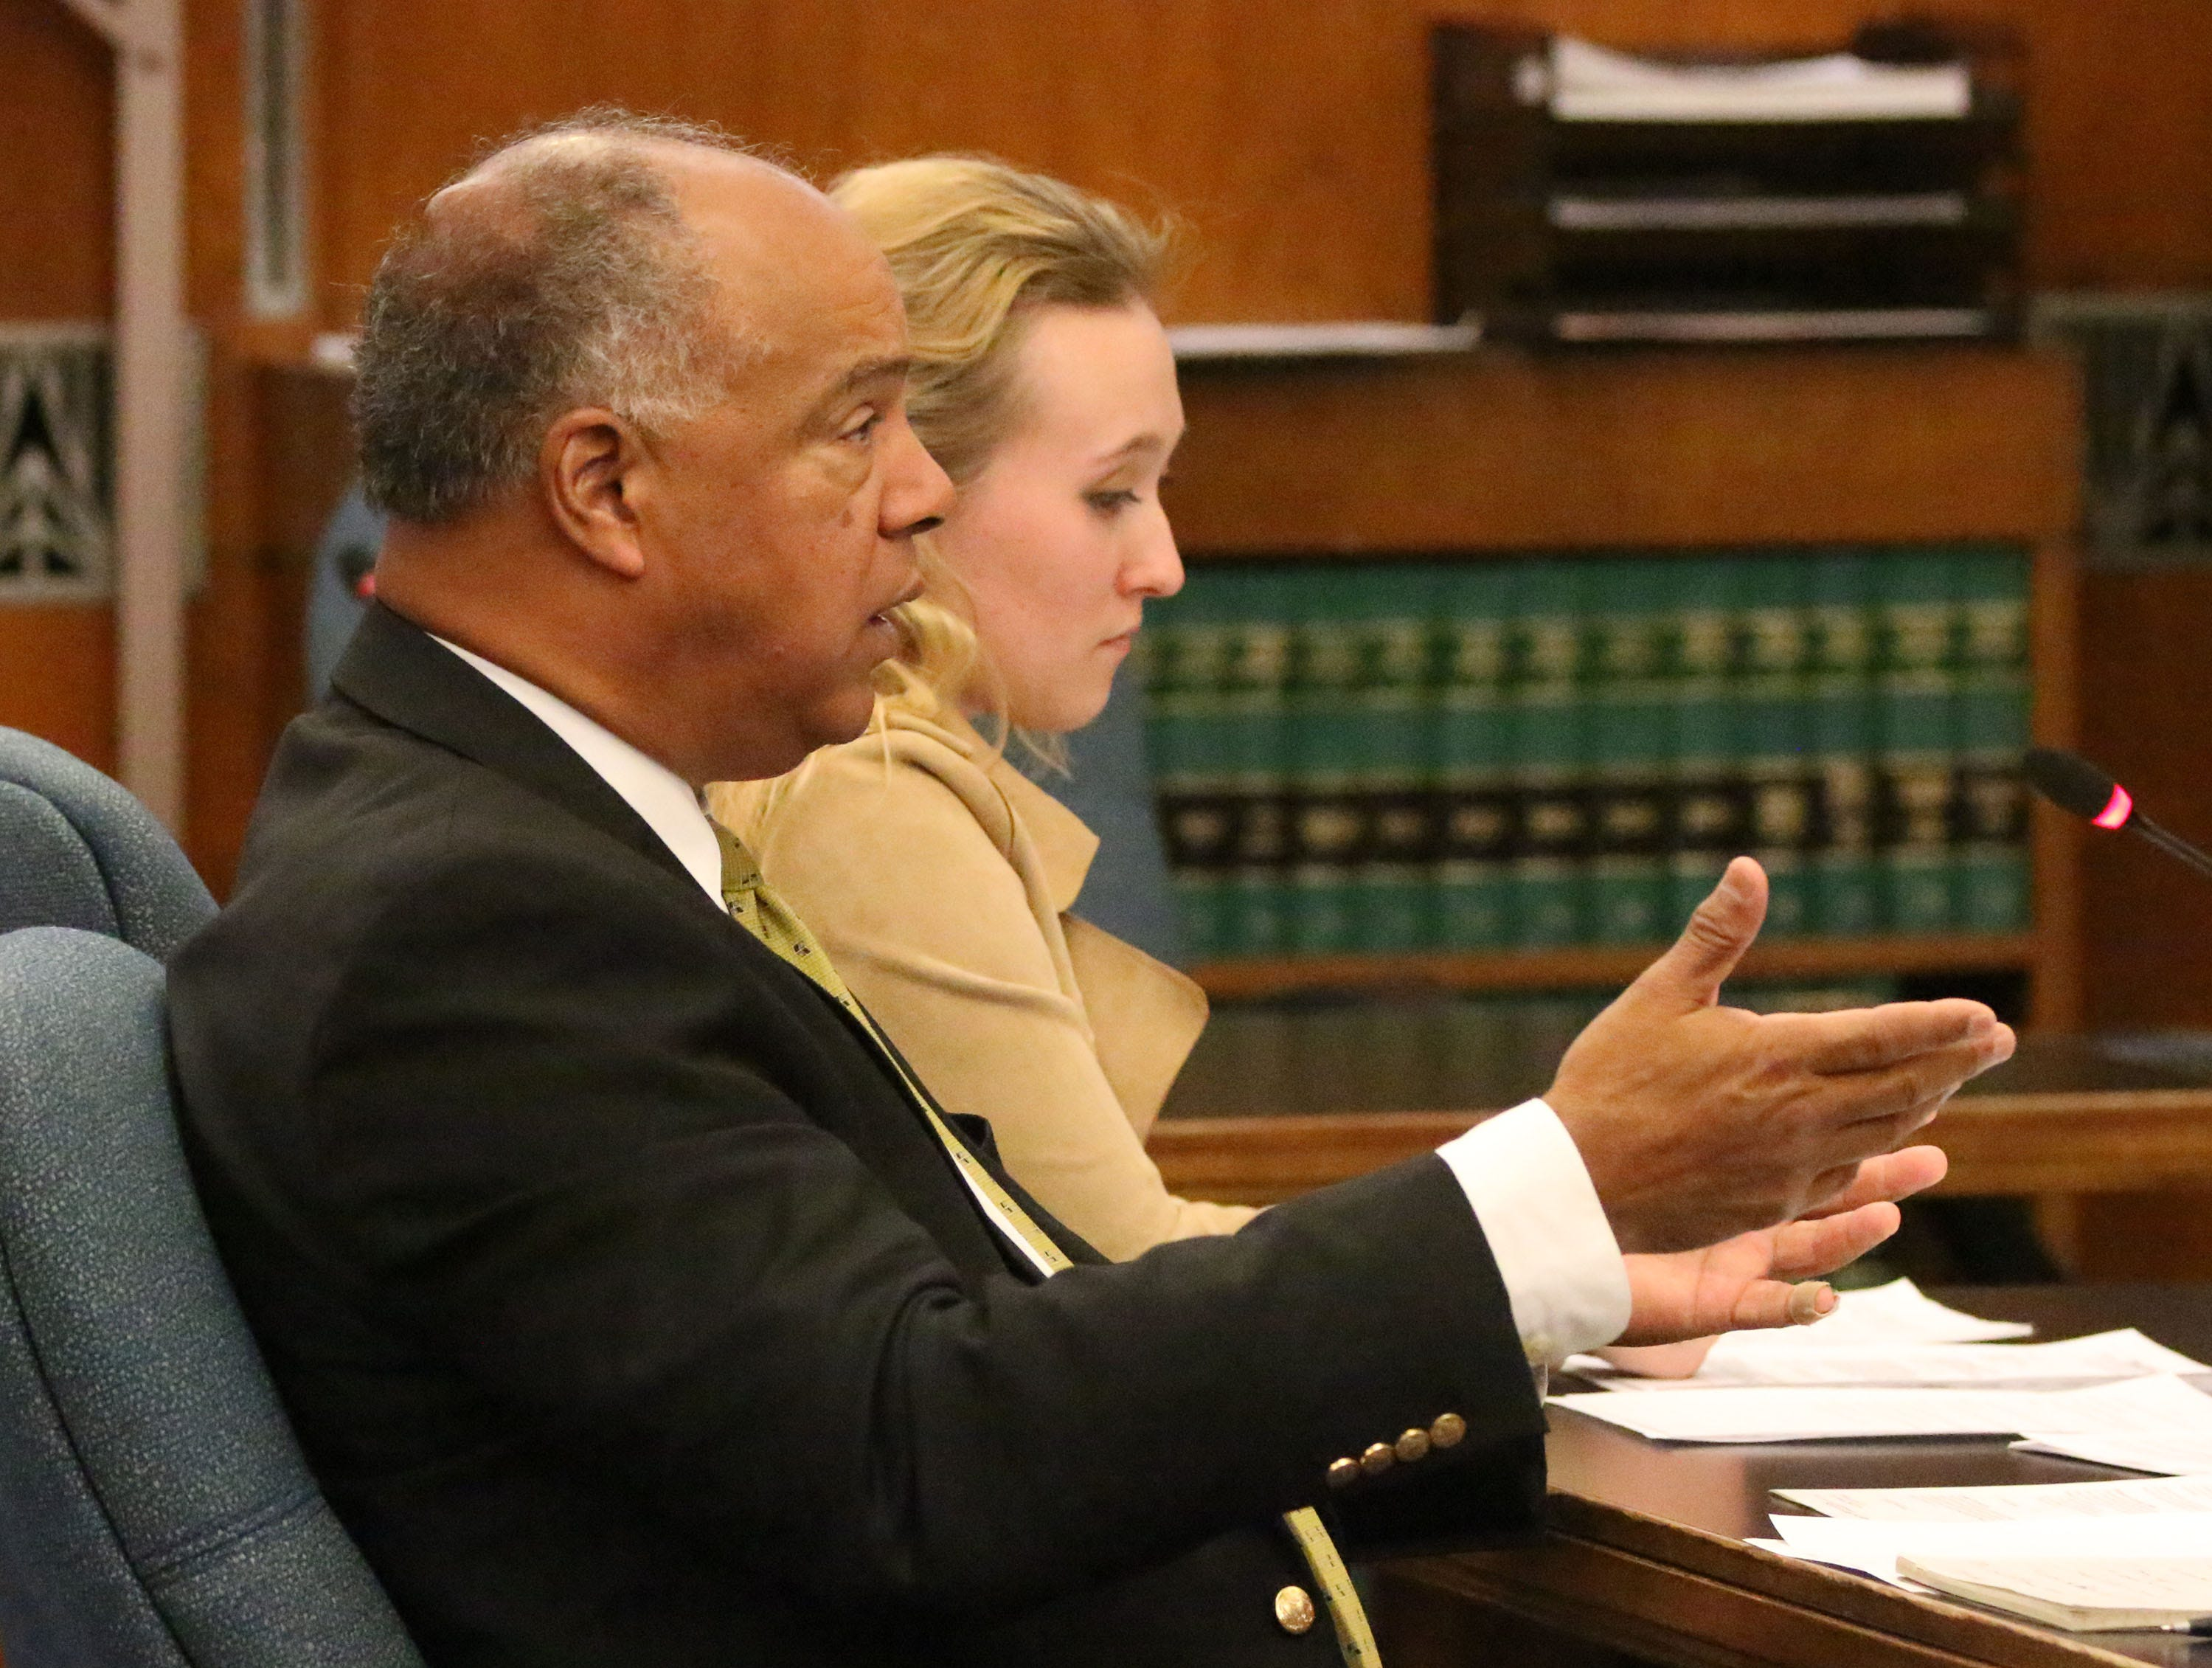 Defense Atty. Gary George, left, speaks on behalf of Breanna Mikula and her involvement in the Kinship Companions kennel case in Sheboygan County Circuit Court Branch 1, Tuesday, October 16, 2018, in Sheboygan, Wis.